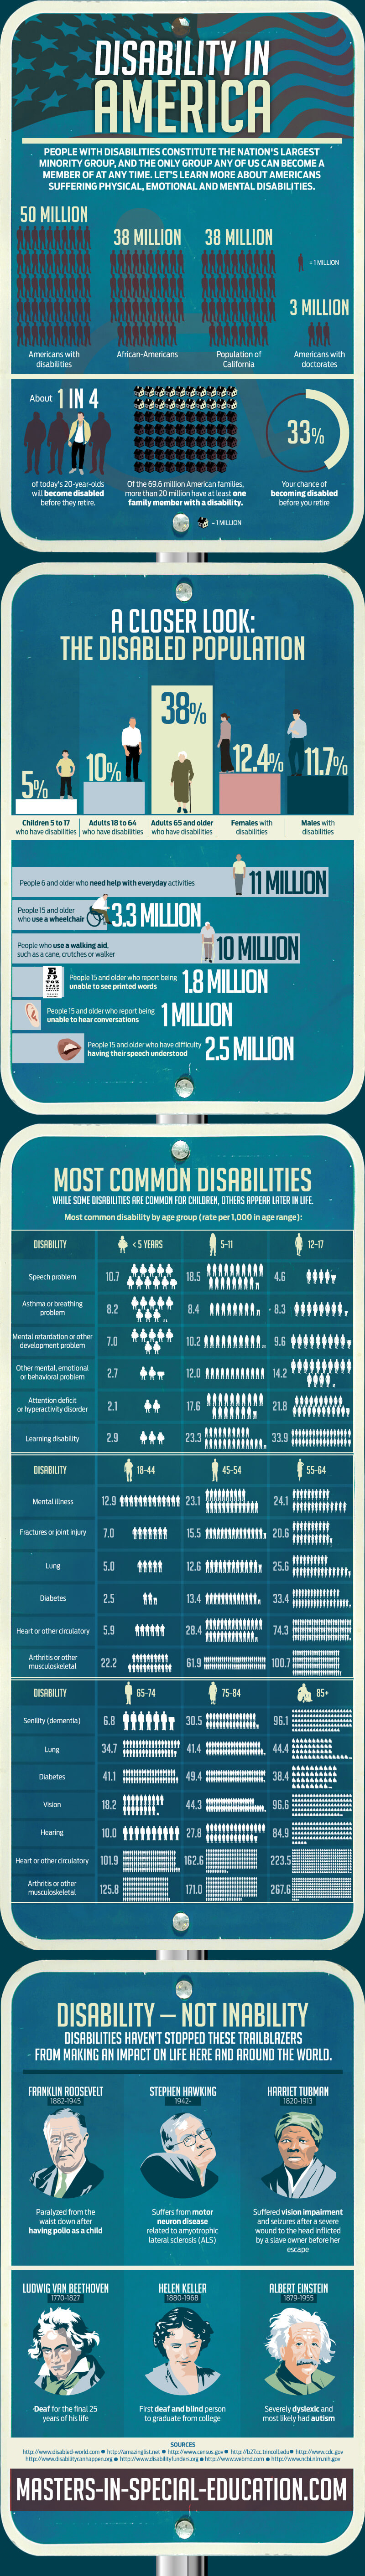 disability-in-america-infographic